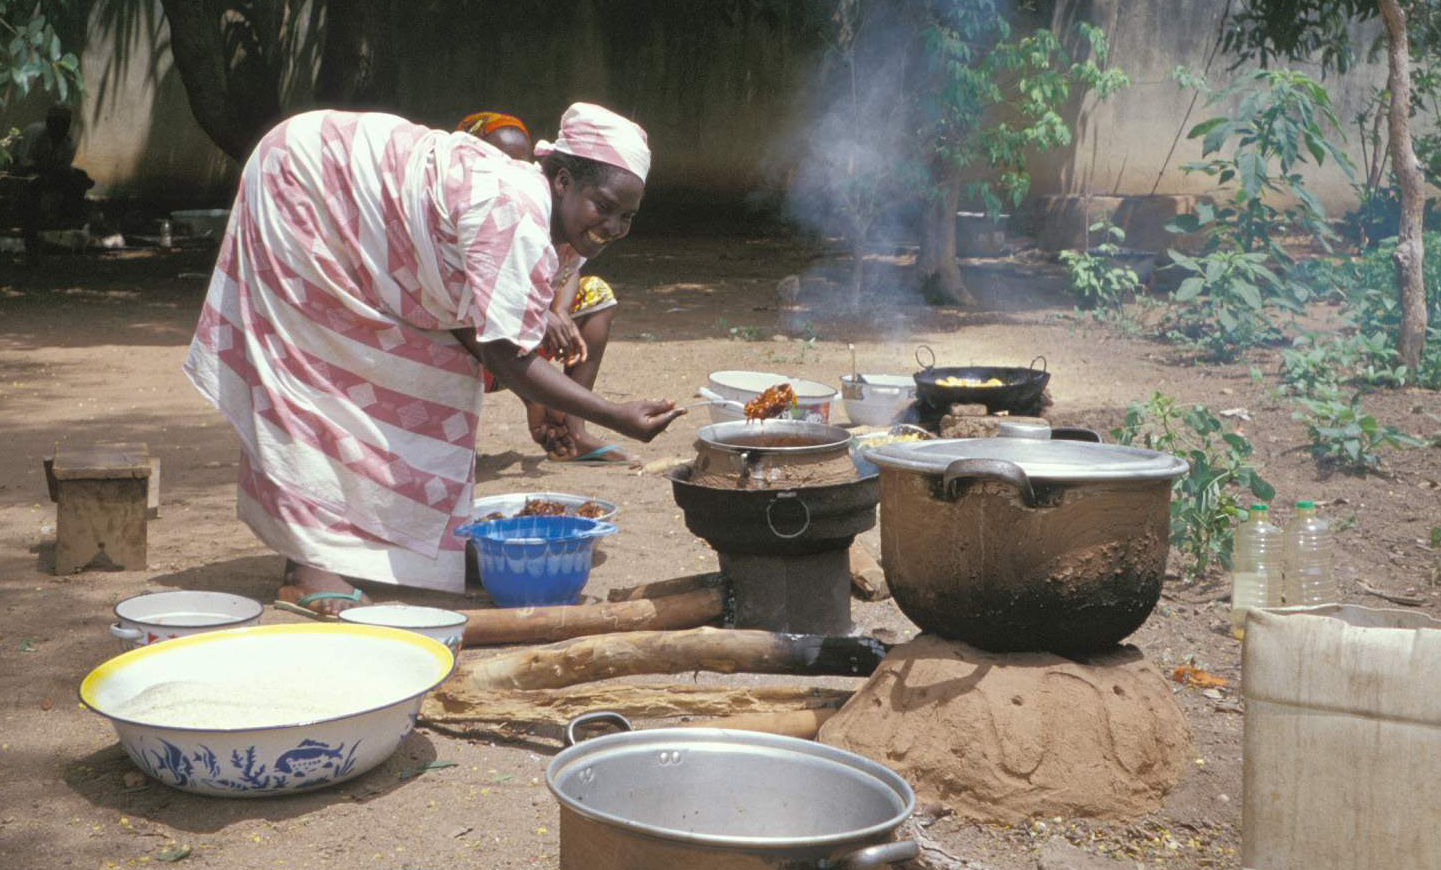 File:Cameroon 2005 - cooking woman.jpg - Wikimedia Commons